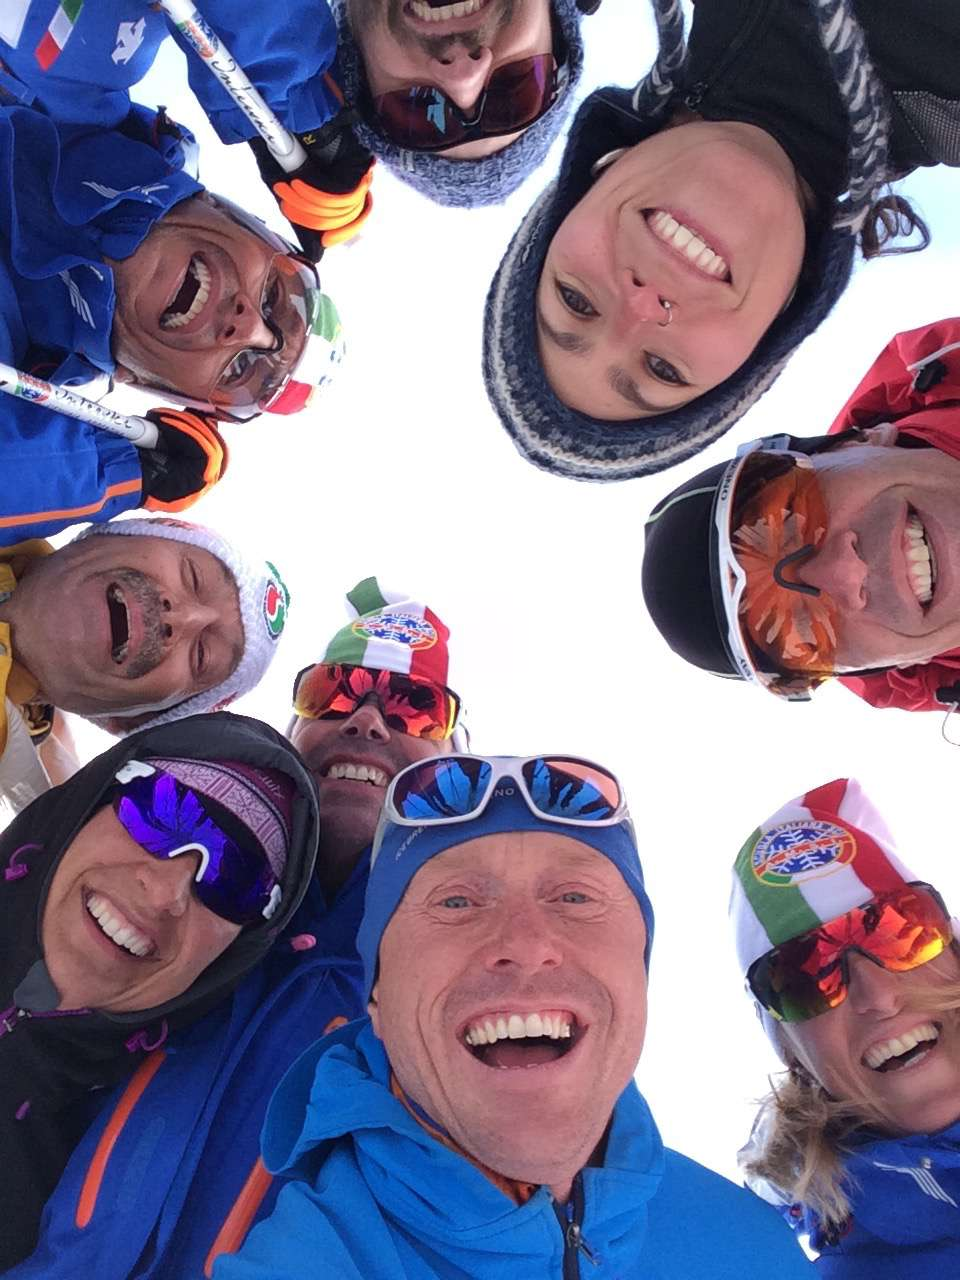 Everyone poses for an impromptu selfie after the us on snow presentation.